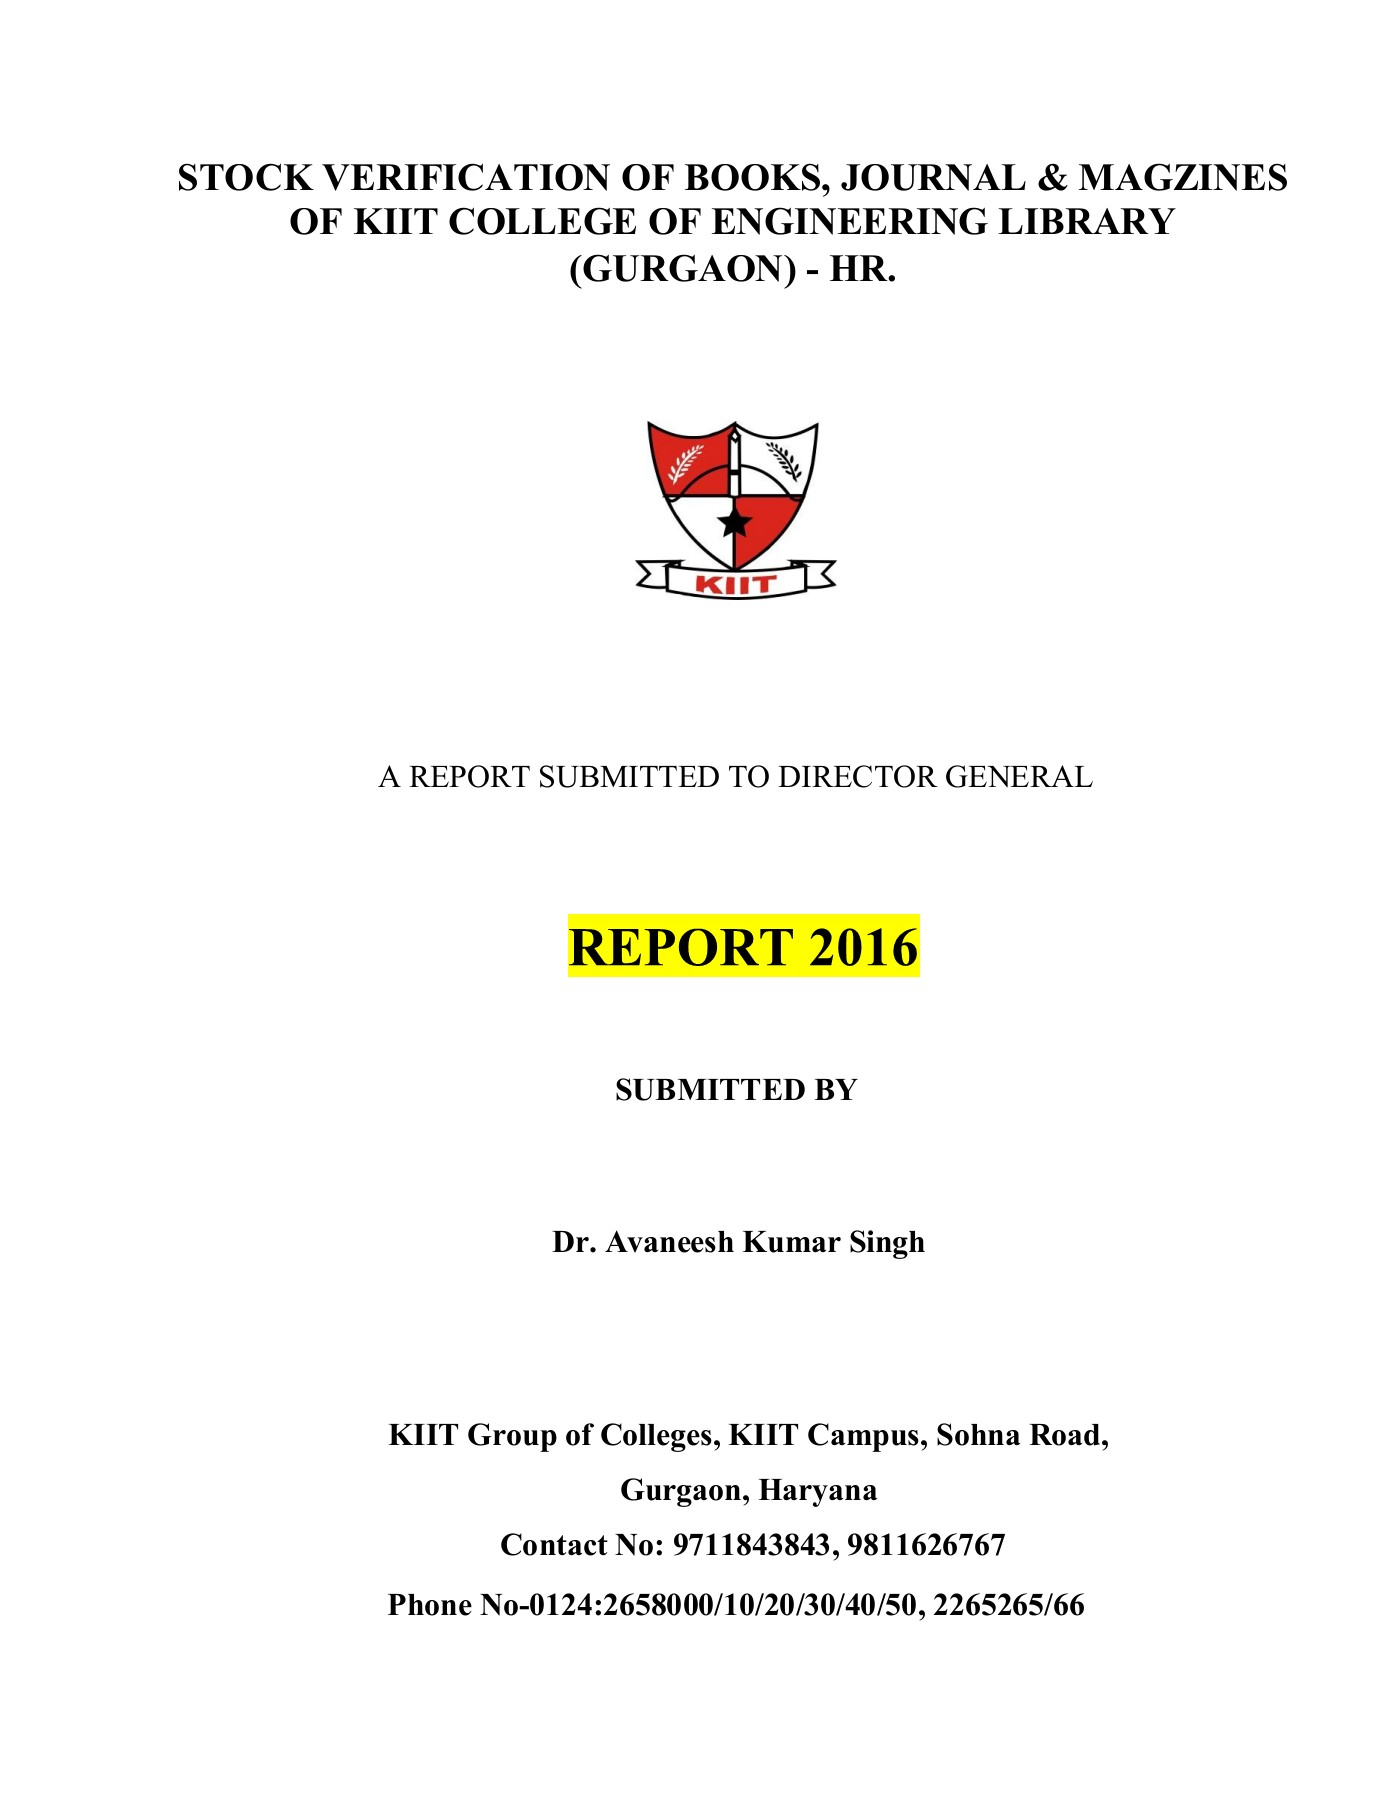 Kce Stock Verification Report 2016 Pages 1 28 Text Version Anyflip Electronic Device Circuit Jb Gupta